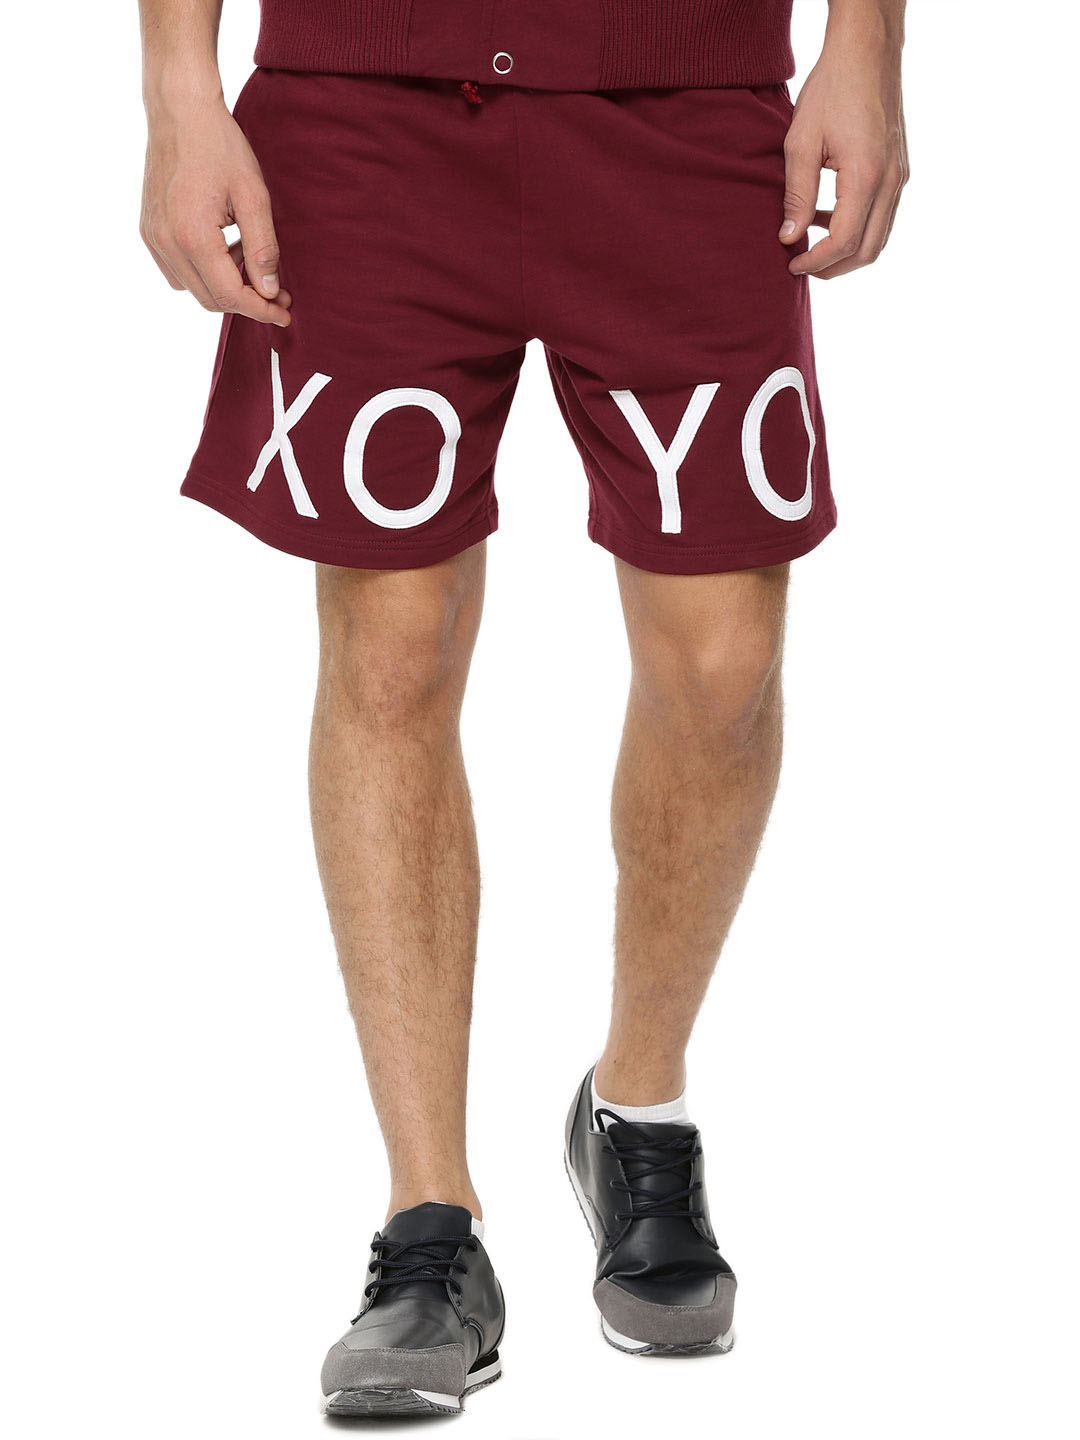 X.O.Y.O CRANBERRY Brand Carrier Shorts In Knit Fabric 1